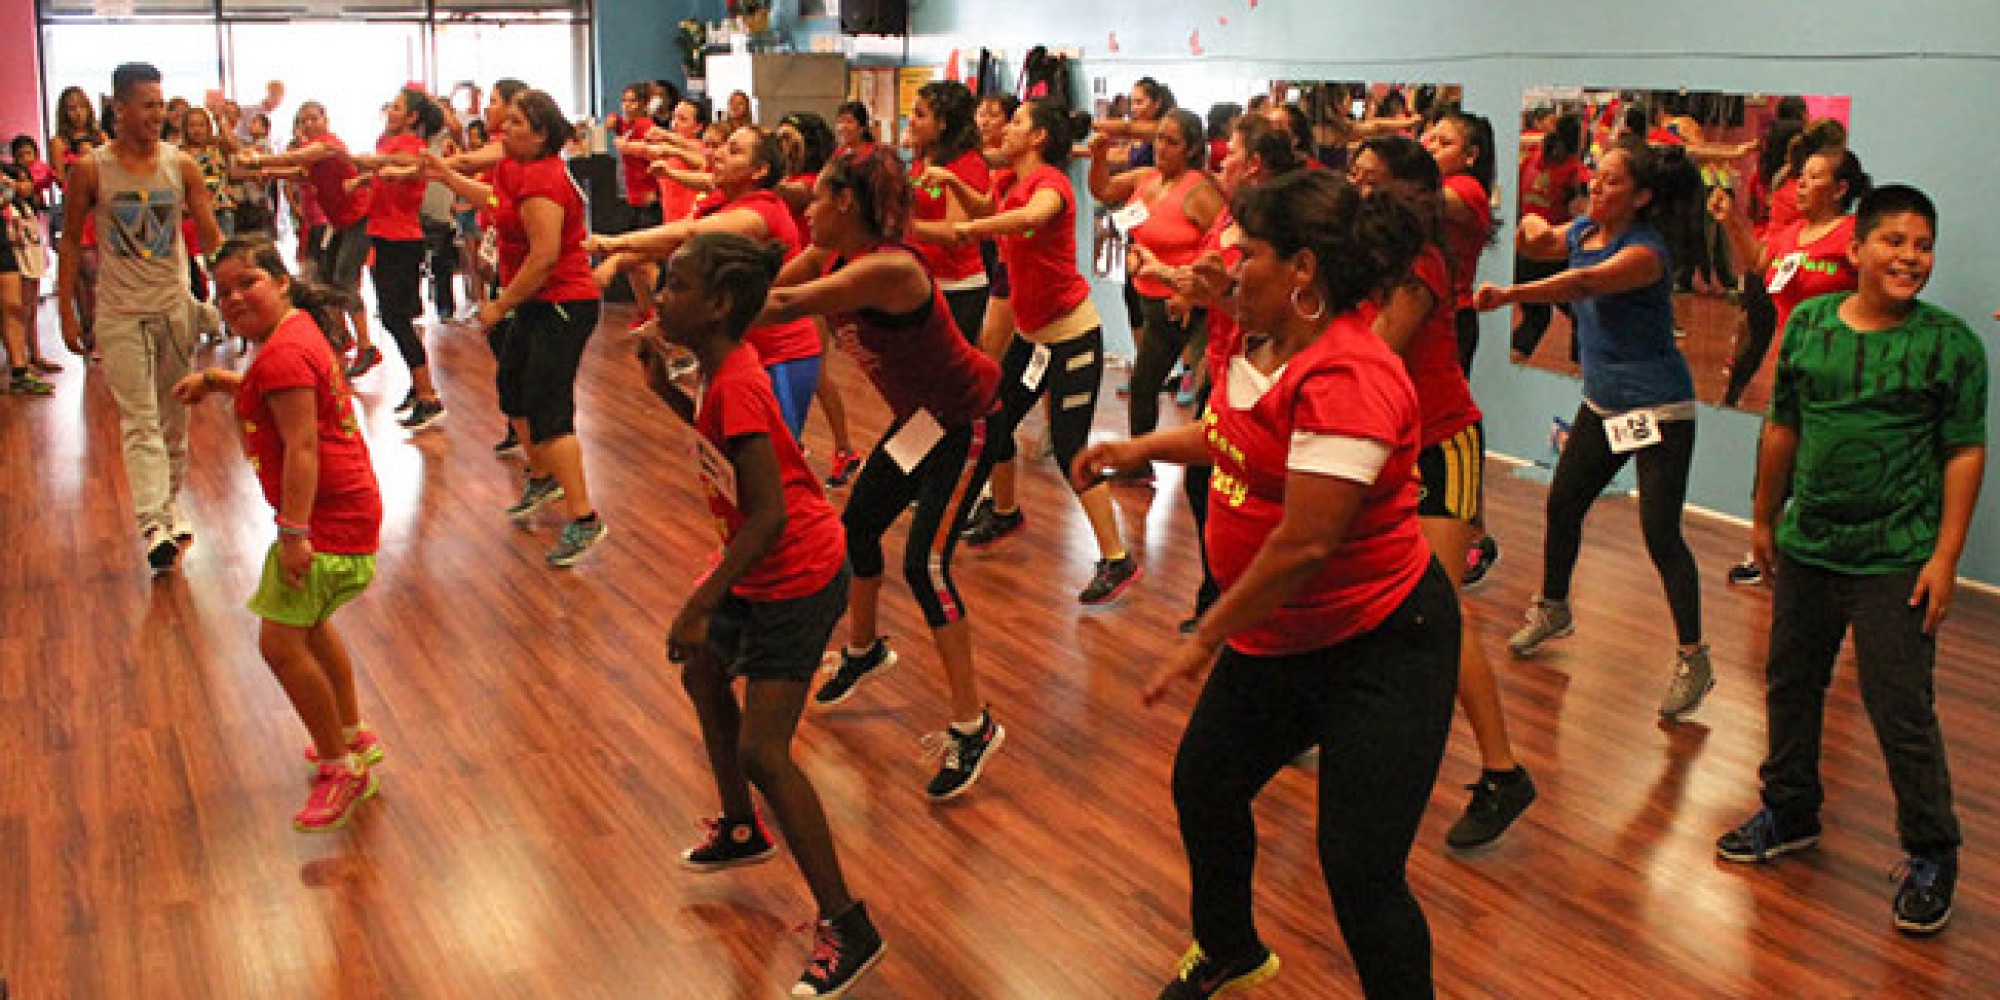 This Exercise Craze Is Giving Low-Income Women A Chance To ...